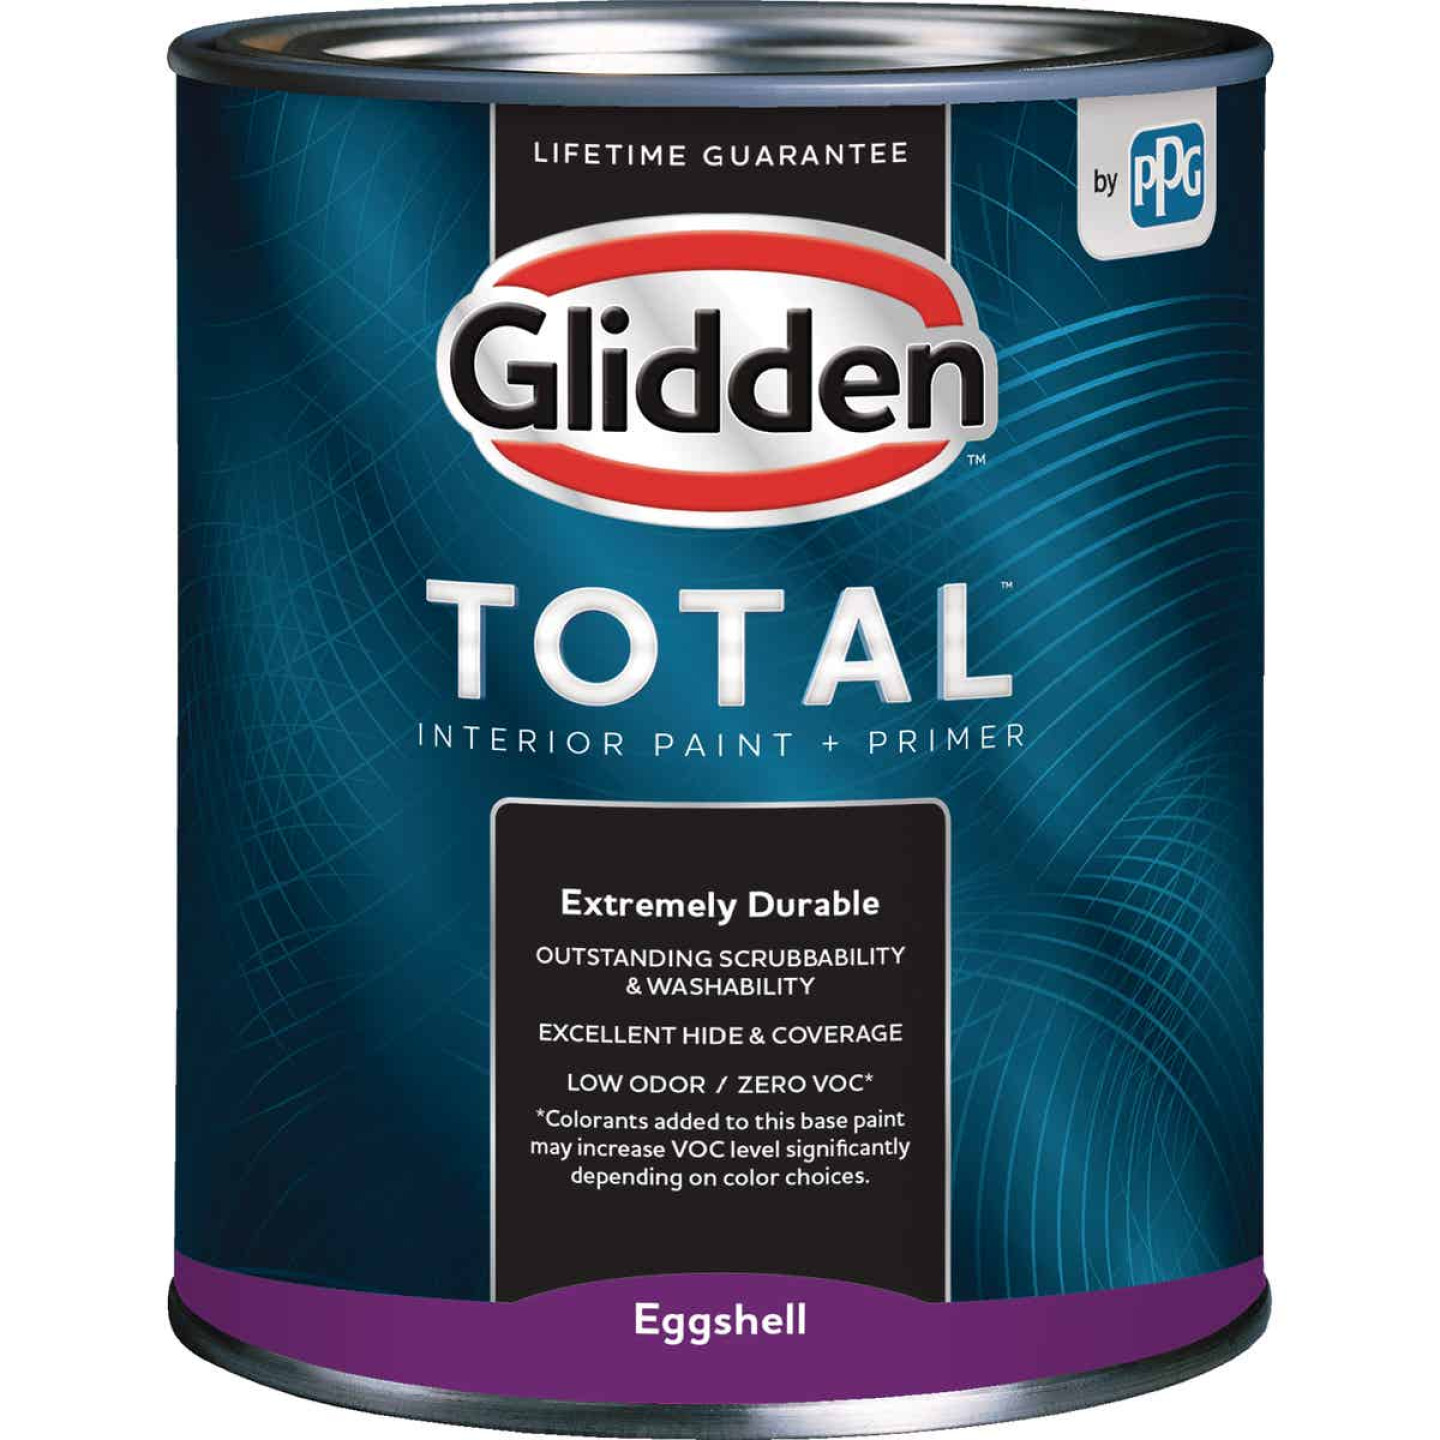 Glidden Total Interior Paint + Primer Eggshell Ultra Deep Base Quart Image 1